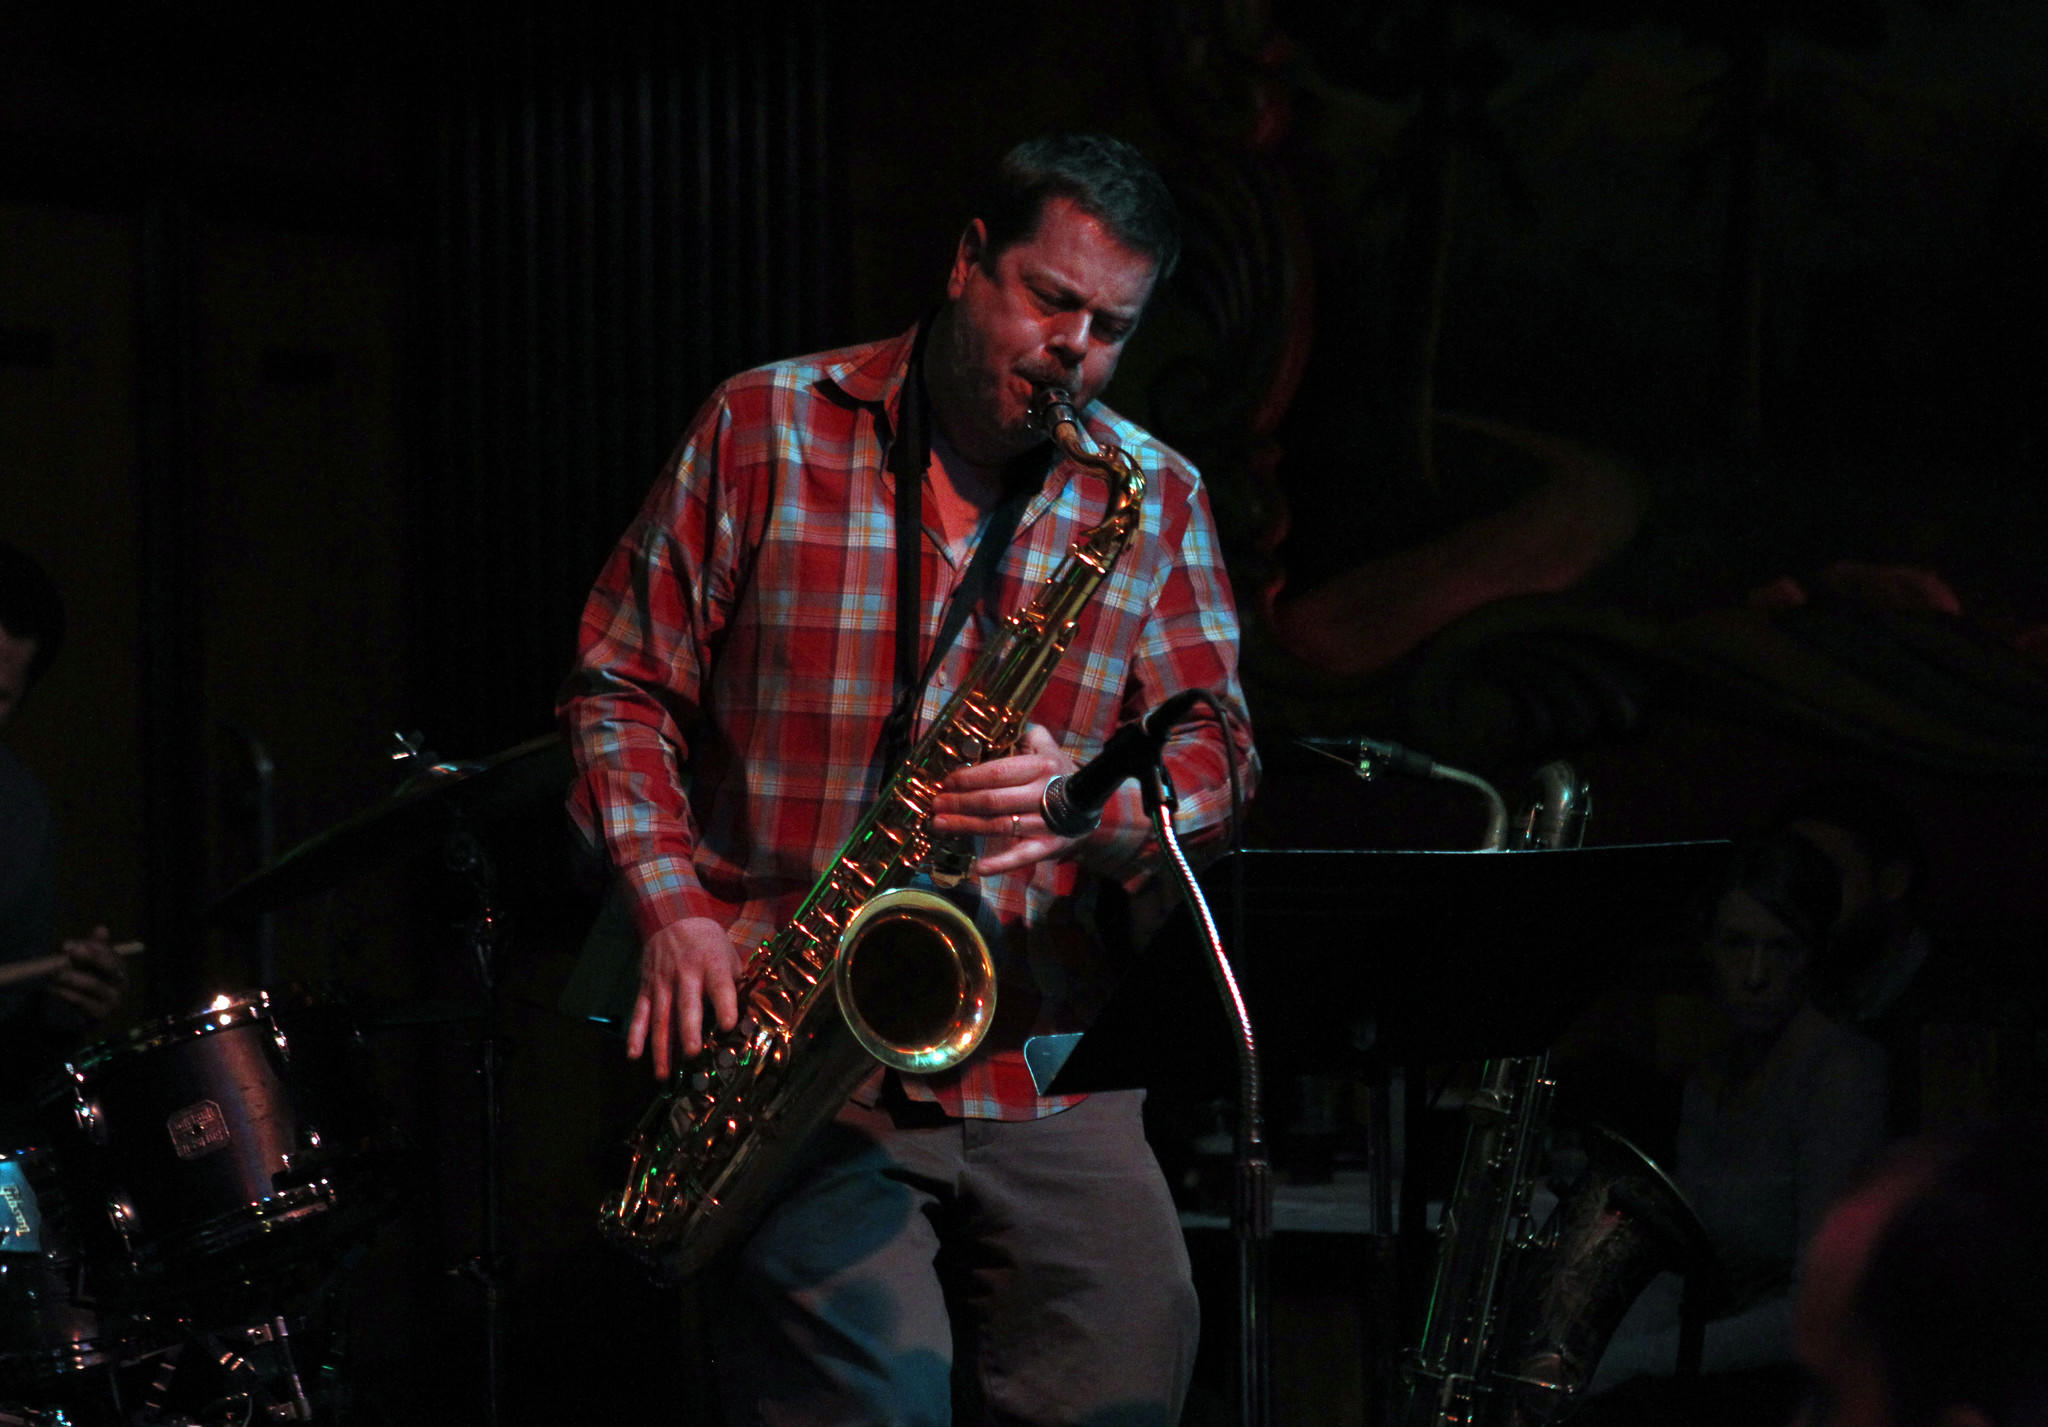 Ken Vandermark plays the saxophone at the Green Mill in Chicago.